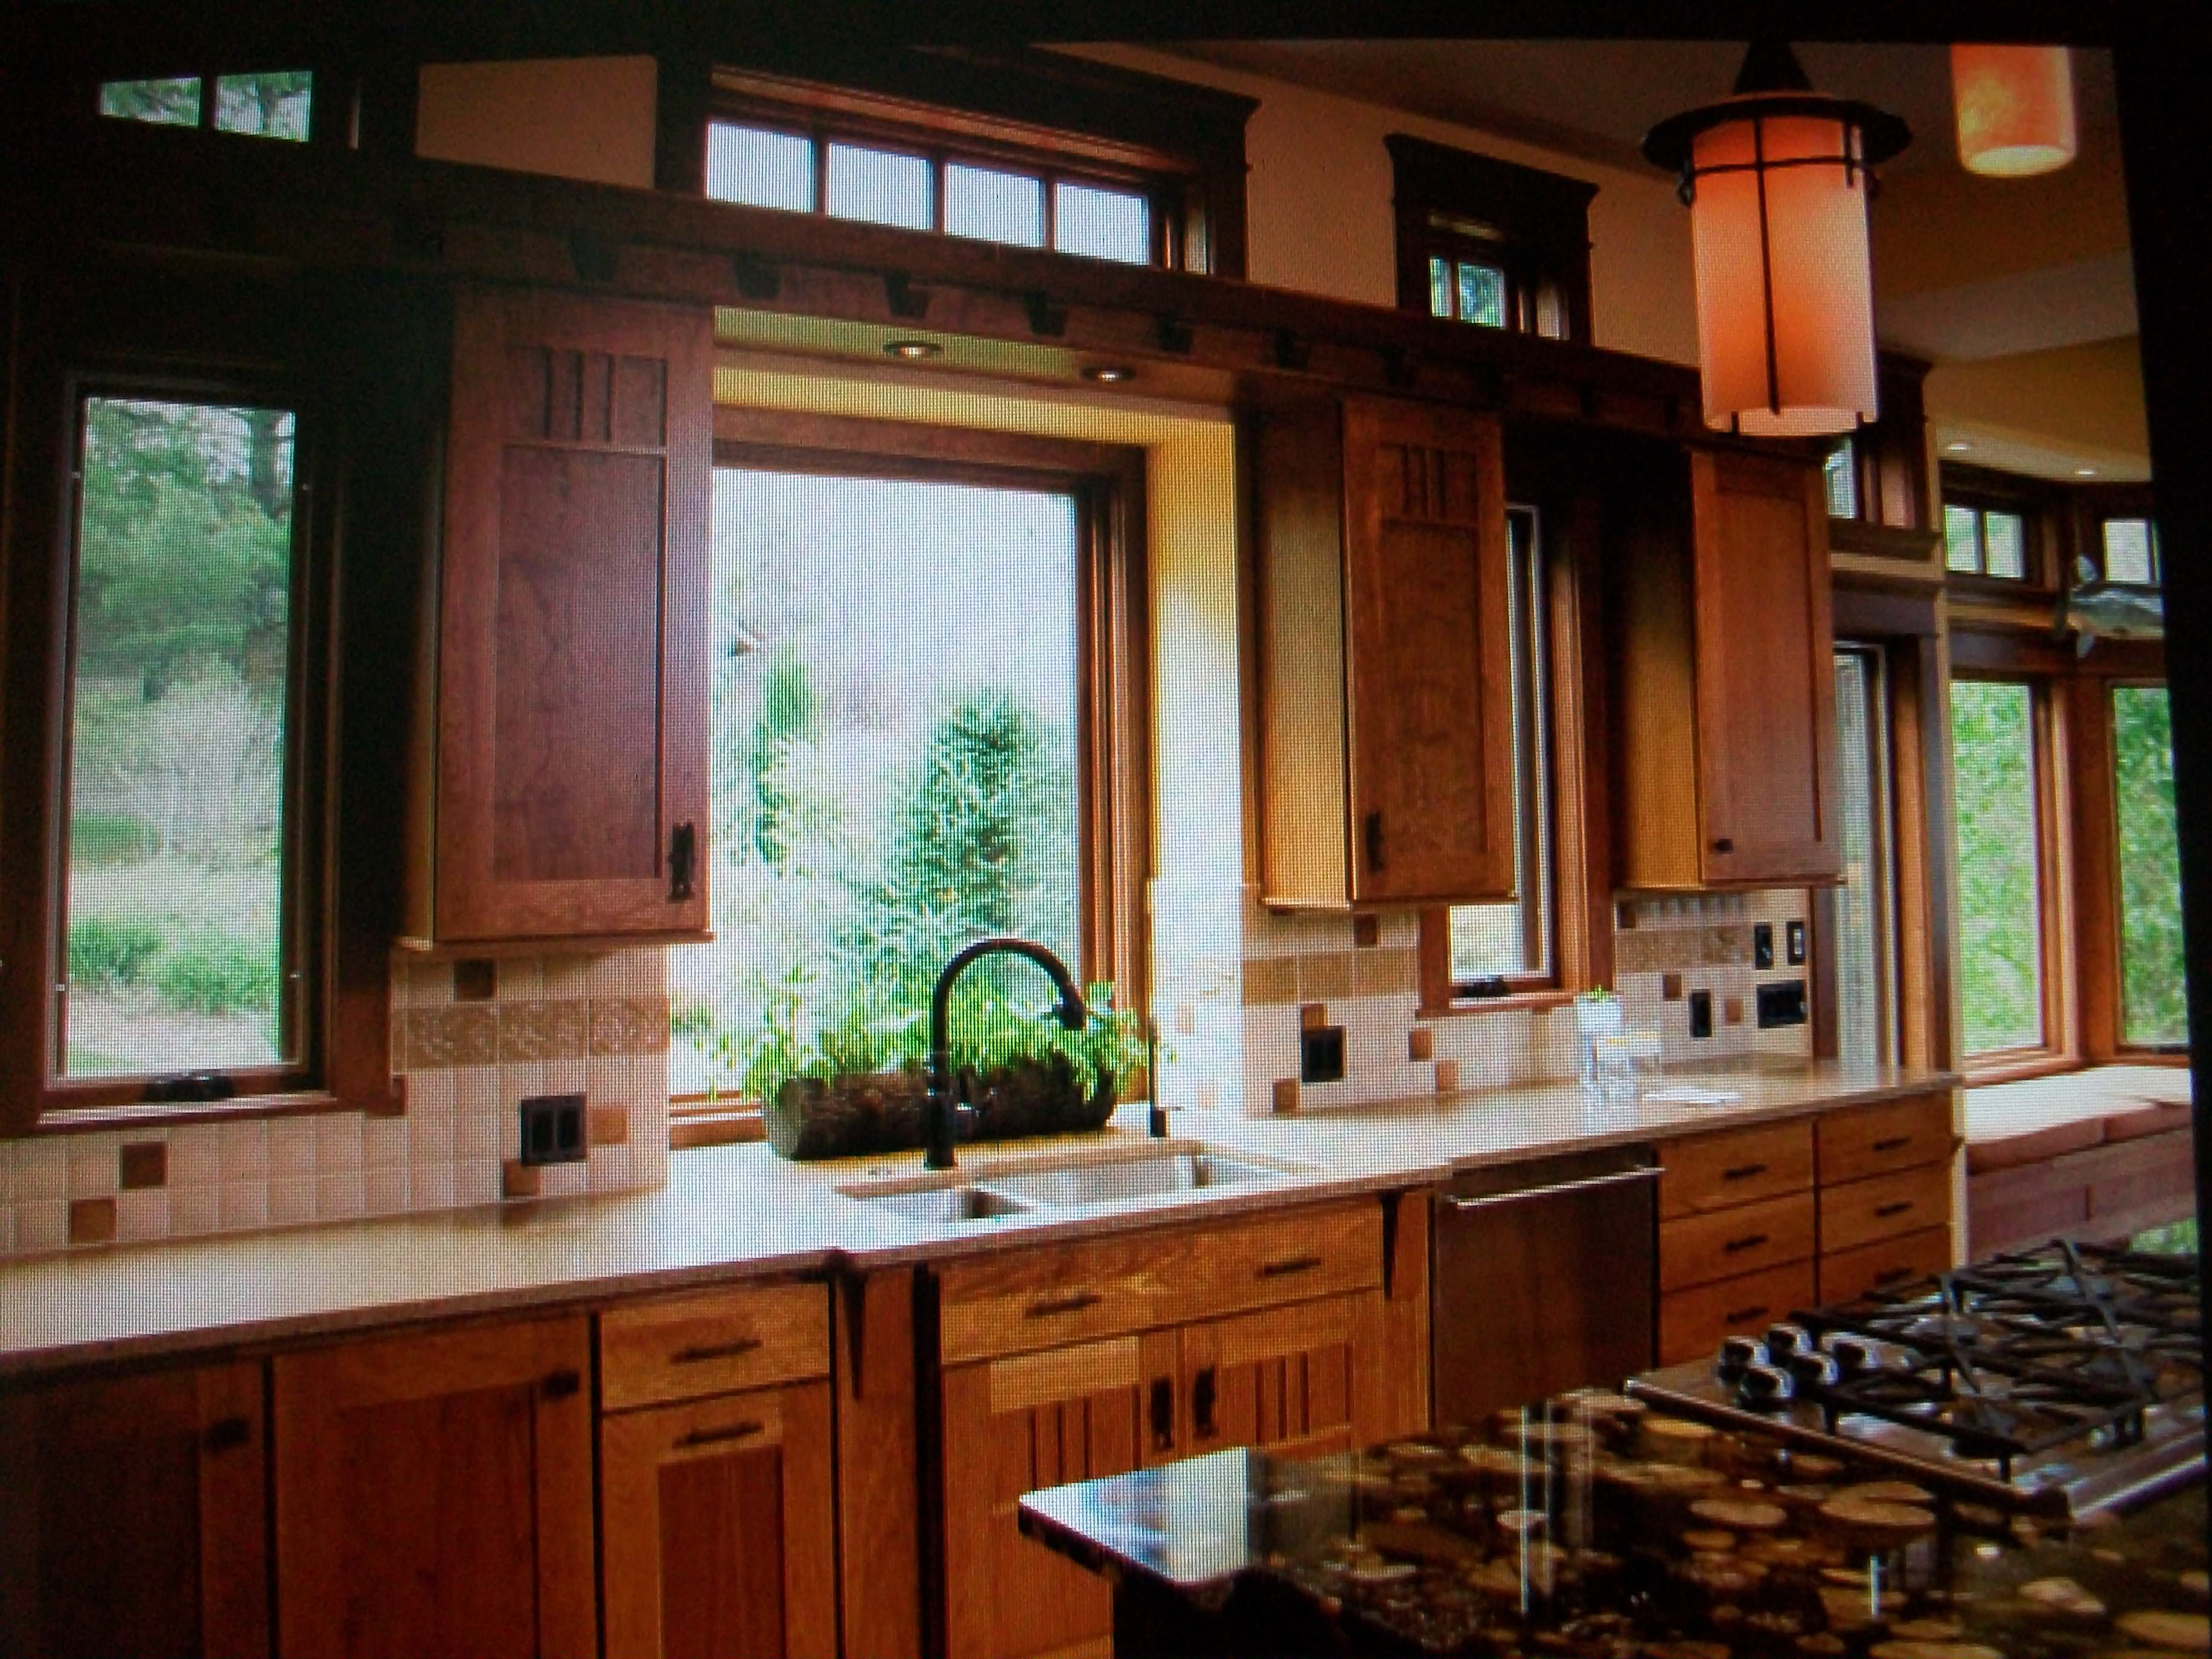 Mission Style Kitchen Lighting Dark Wood Kitchen Cabinets And Window Views Stained Glass Pendant